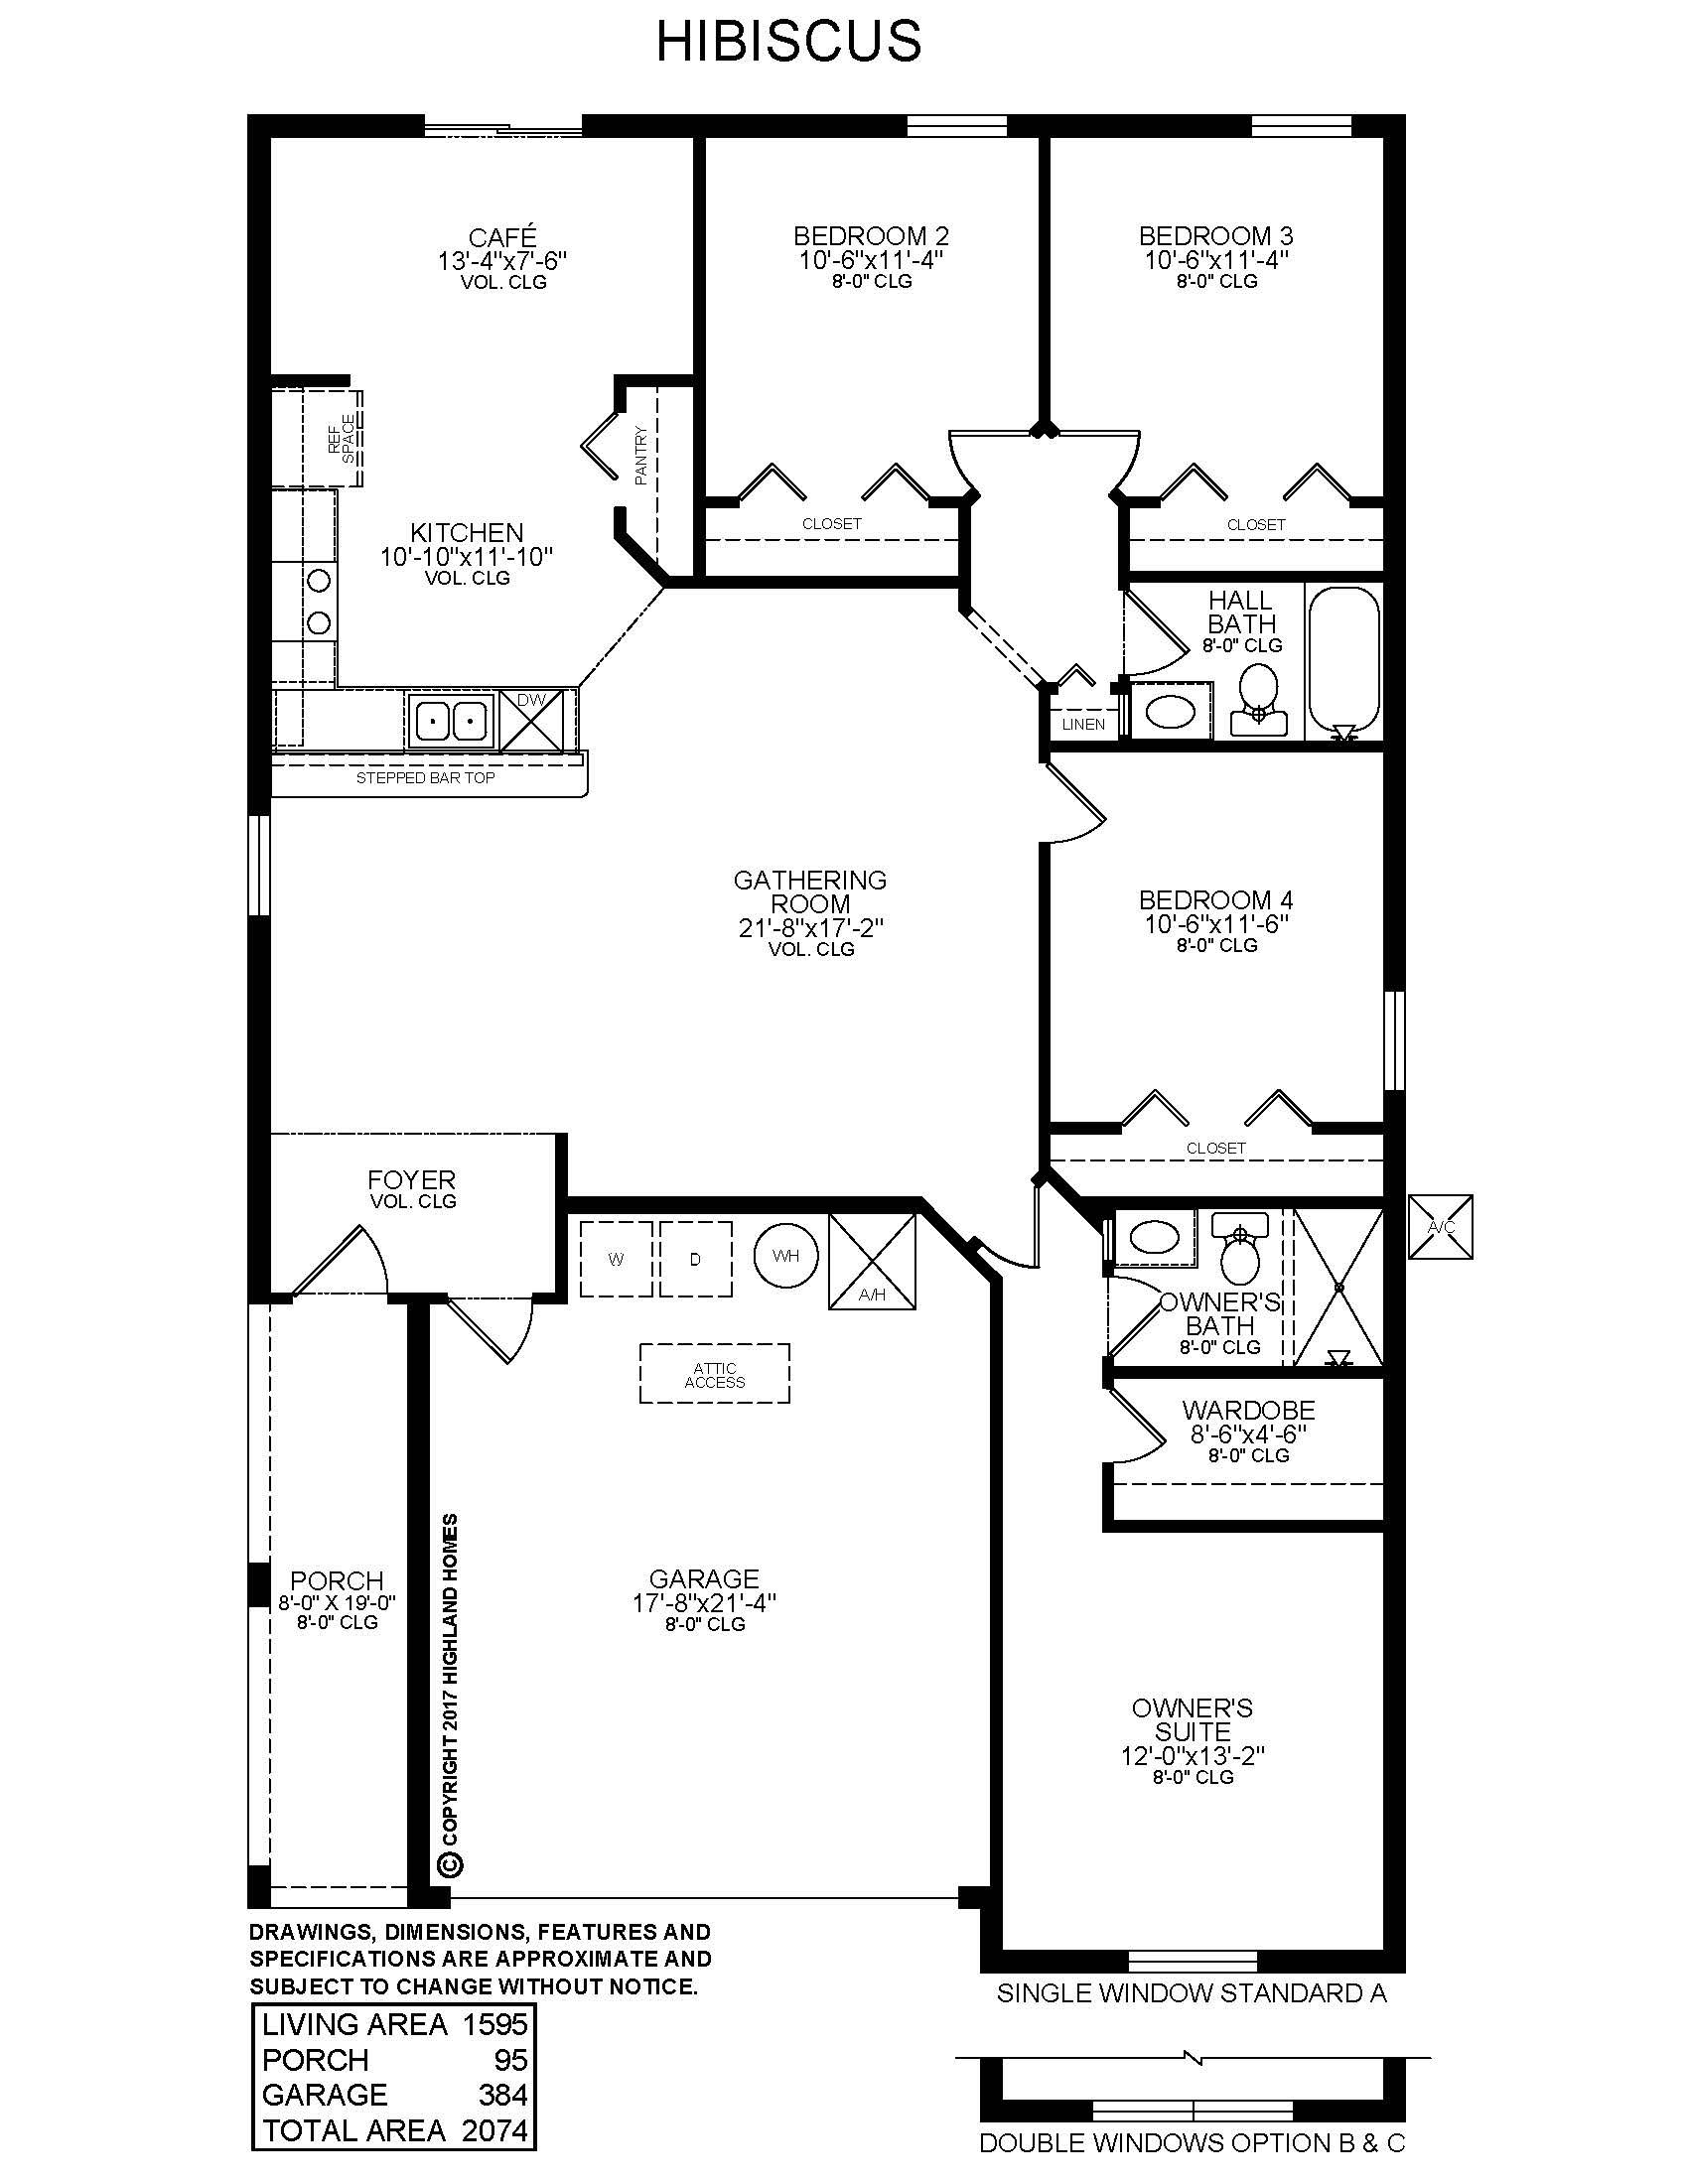 Make your own house plans online for free  Introducing the Hibiscus a new Florida home plan by Highland Homes